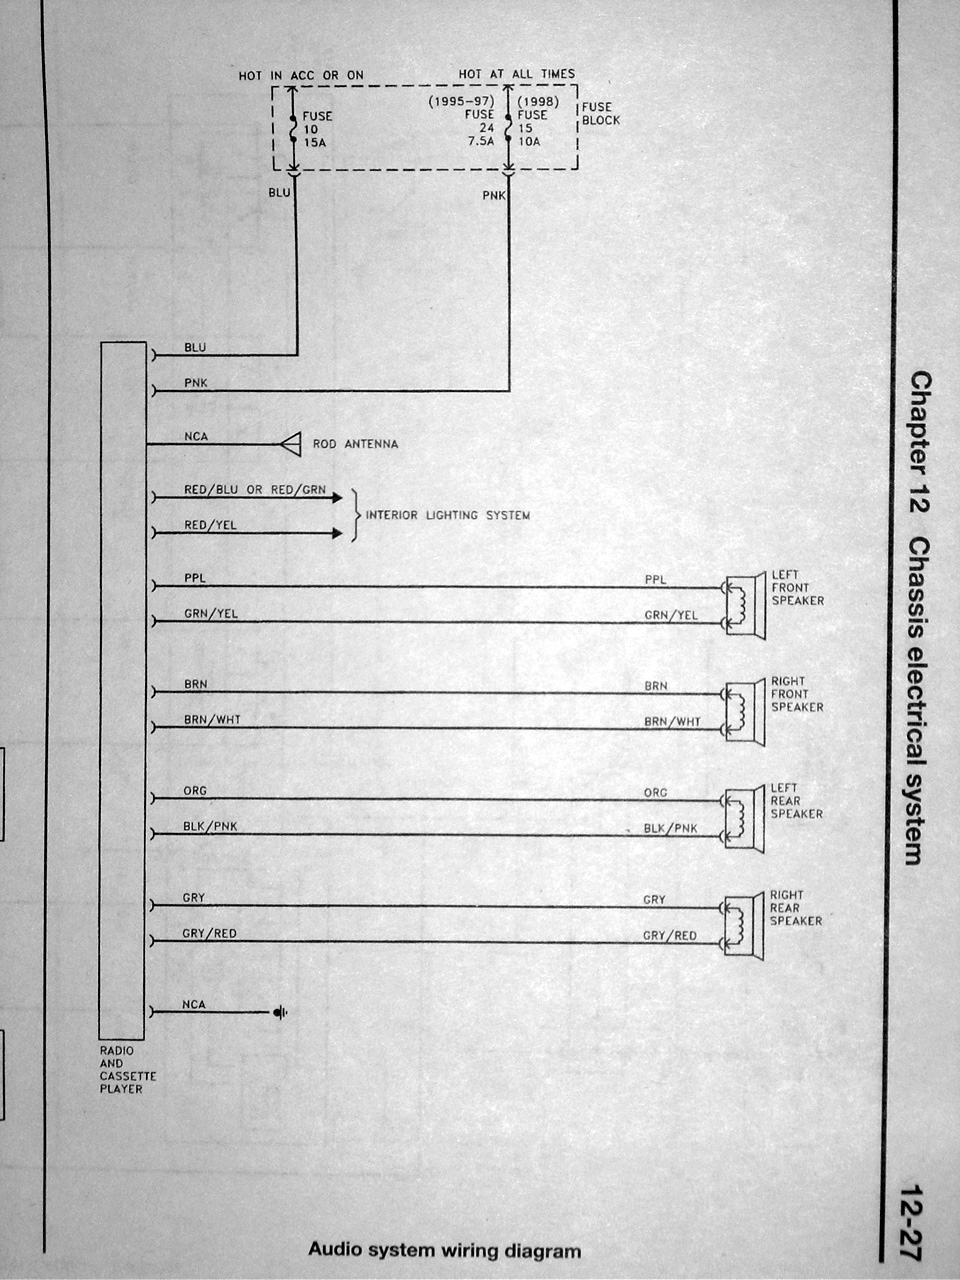 DSC01849 wiring diagram thread *useful info* nissan forum 2006 nissan sentra wiring diagram at honlapkeszites.co